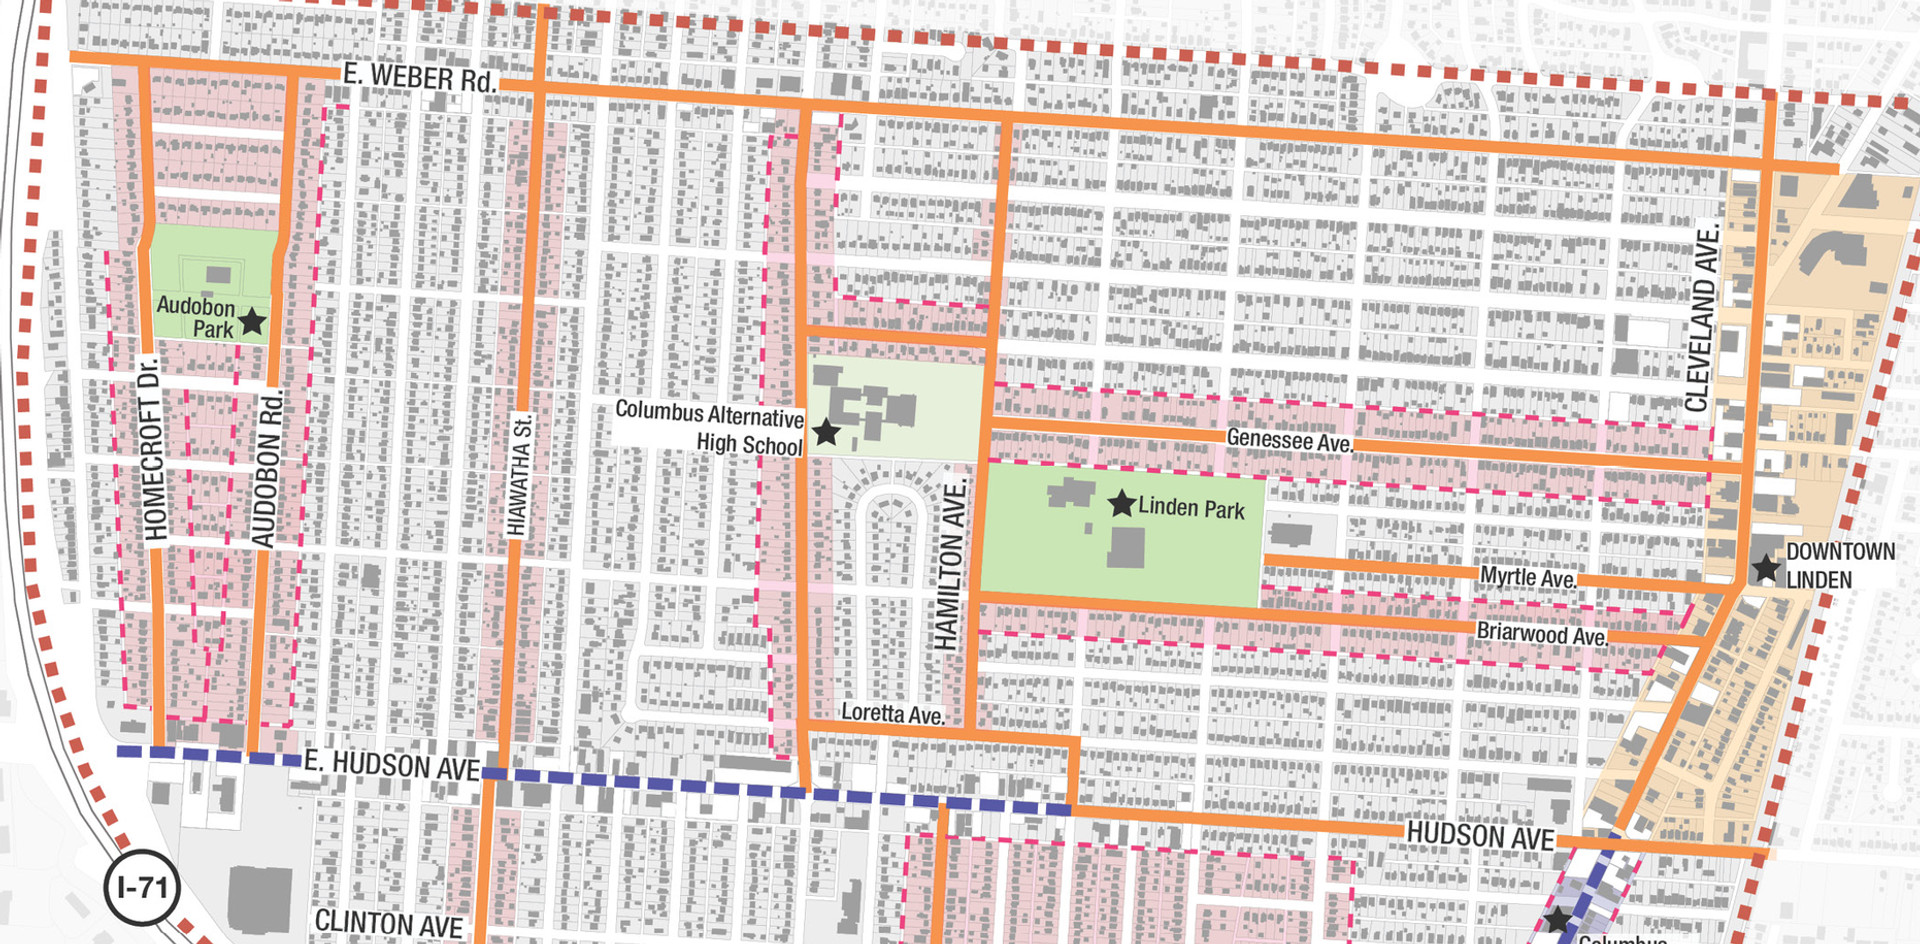 _________ Linden Community Plan mapping